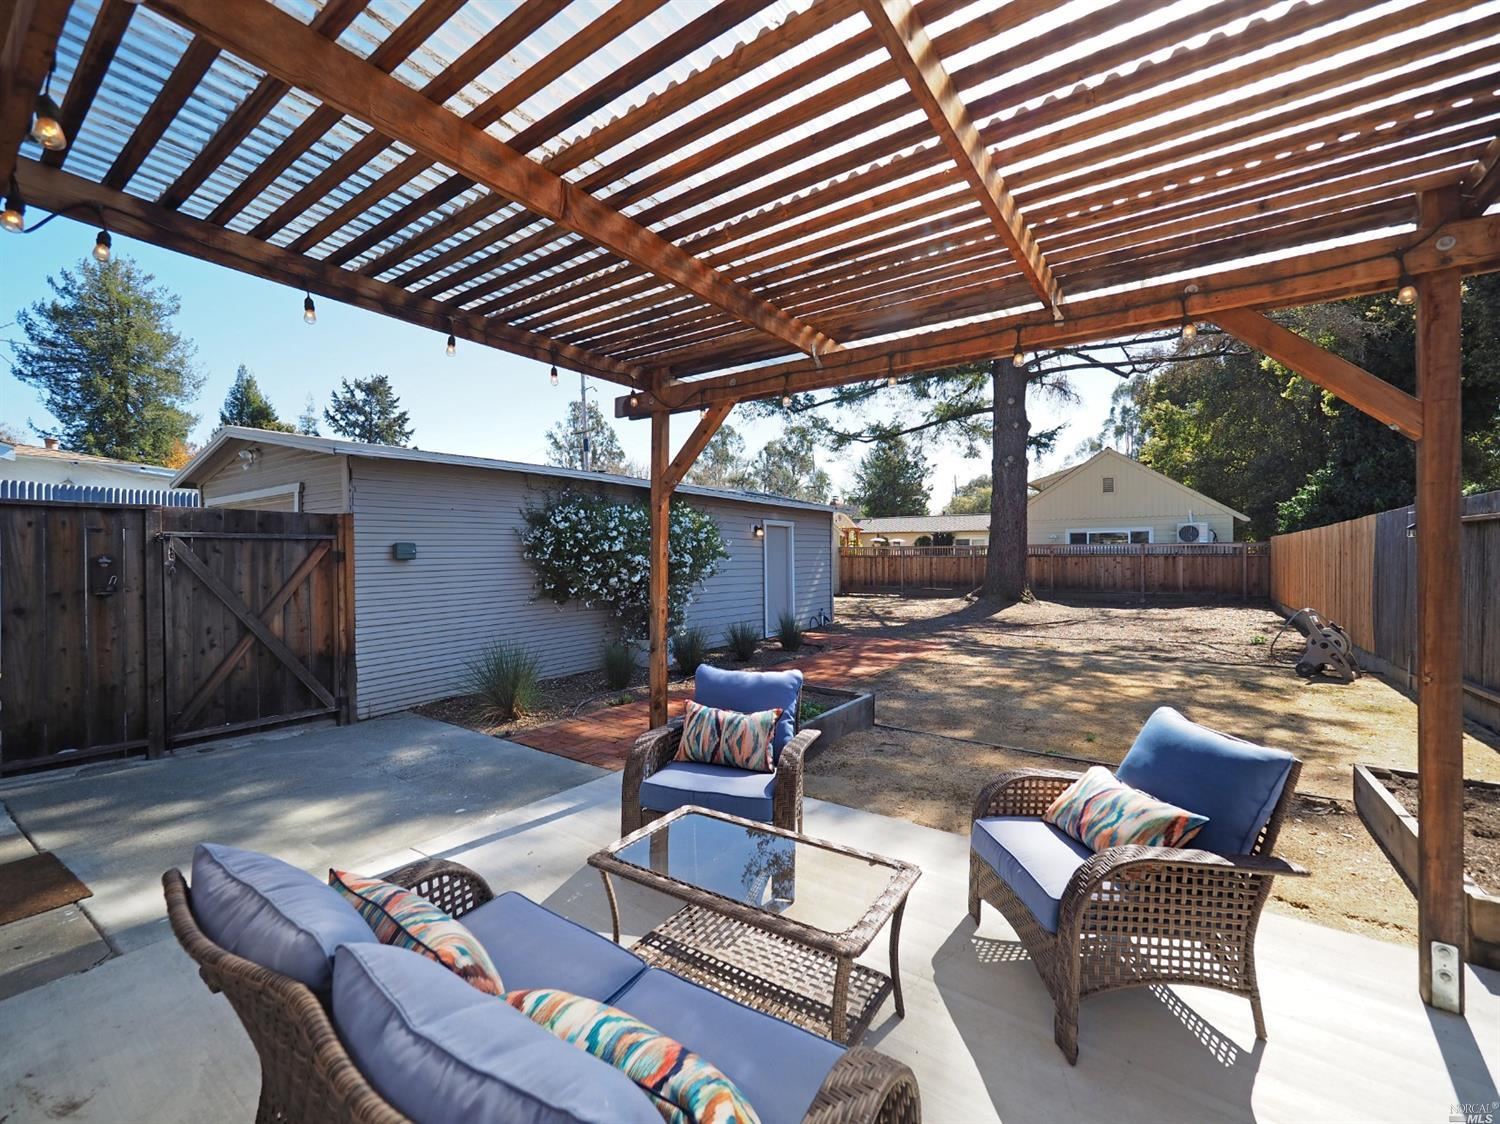 876 Sonoma Ave Back Patio Yard View